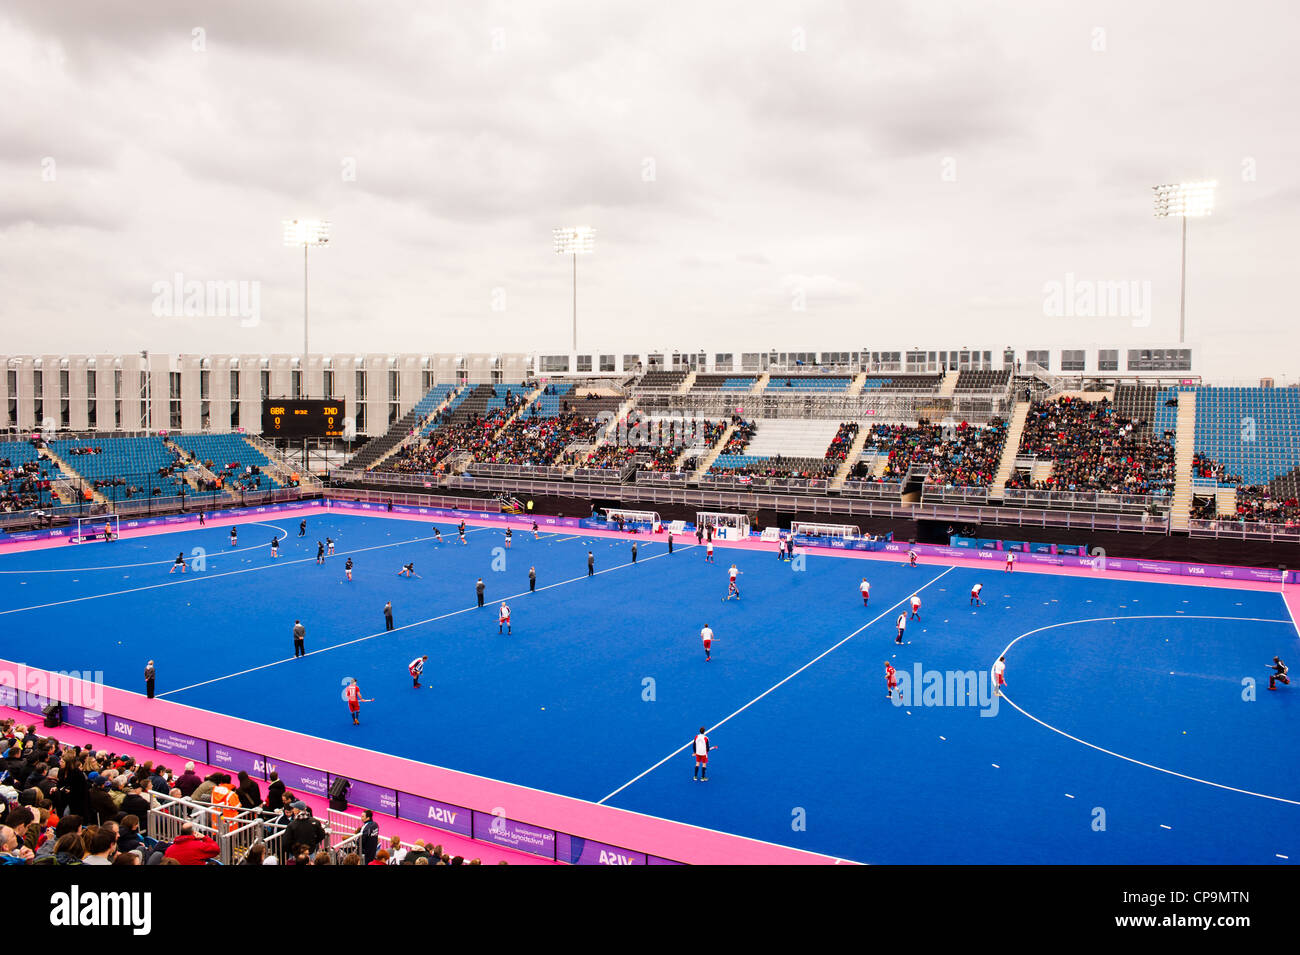 Hockey warming up at the Riverbank arena during the London prepares series at the Olympic park in London on May - Stock Image